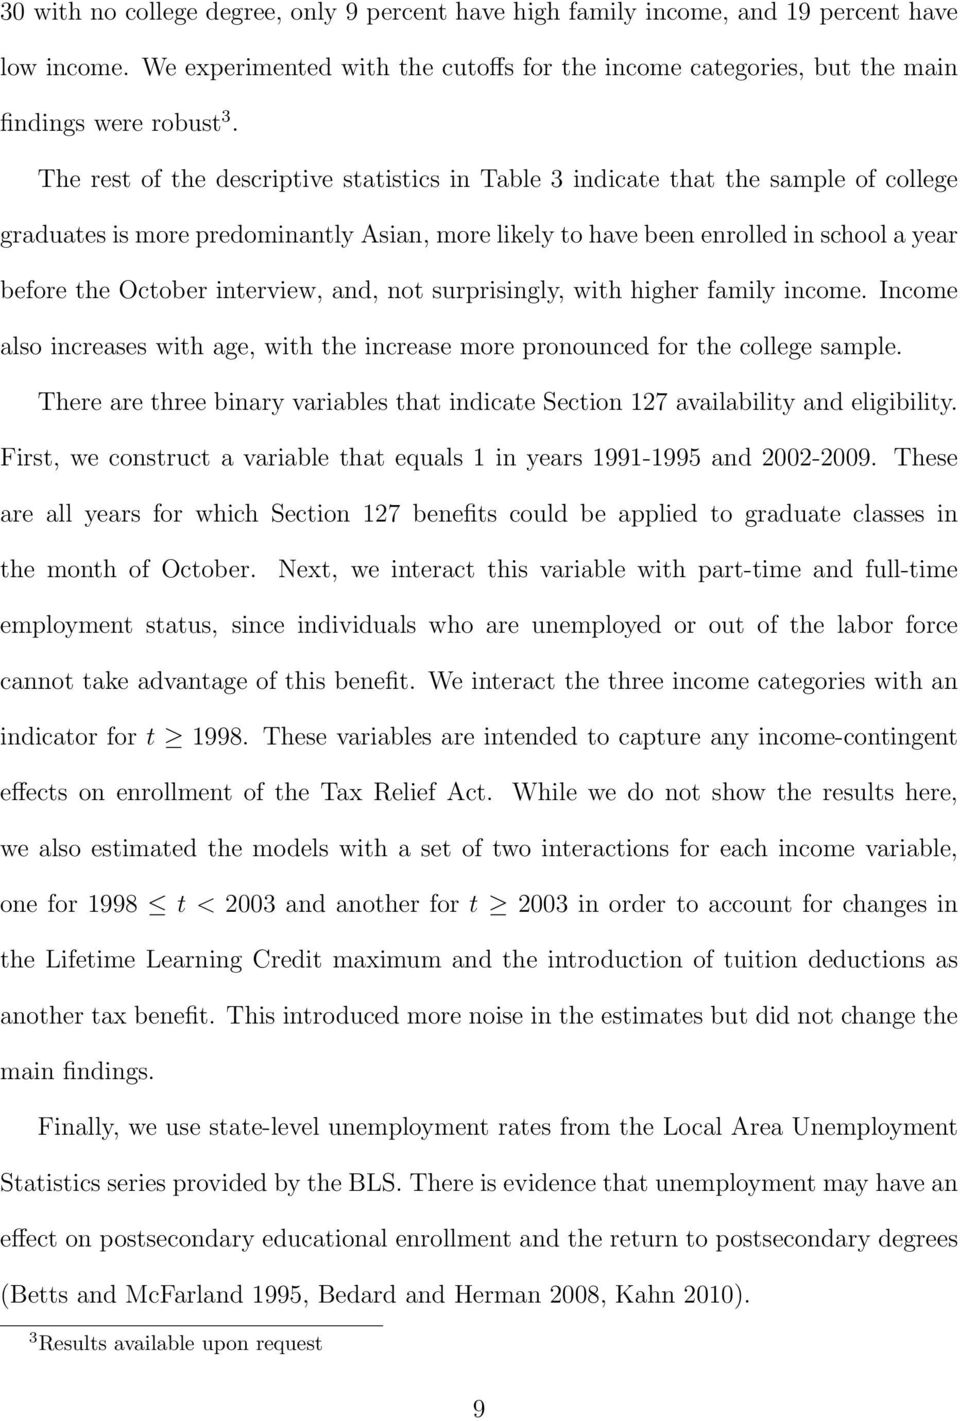 interview, and, not surprisingly, with higher family income. Income also increases with age, with the increase more pronounced for the college sample.